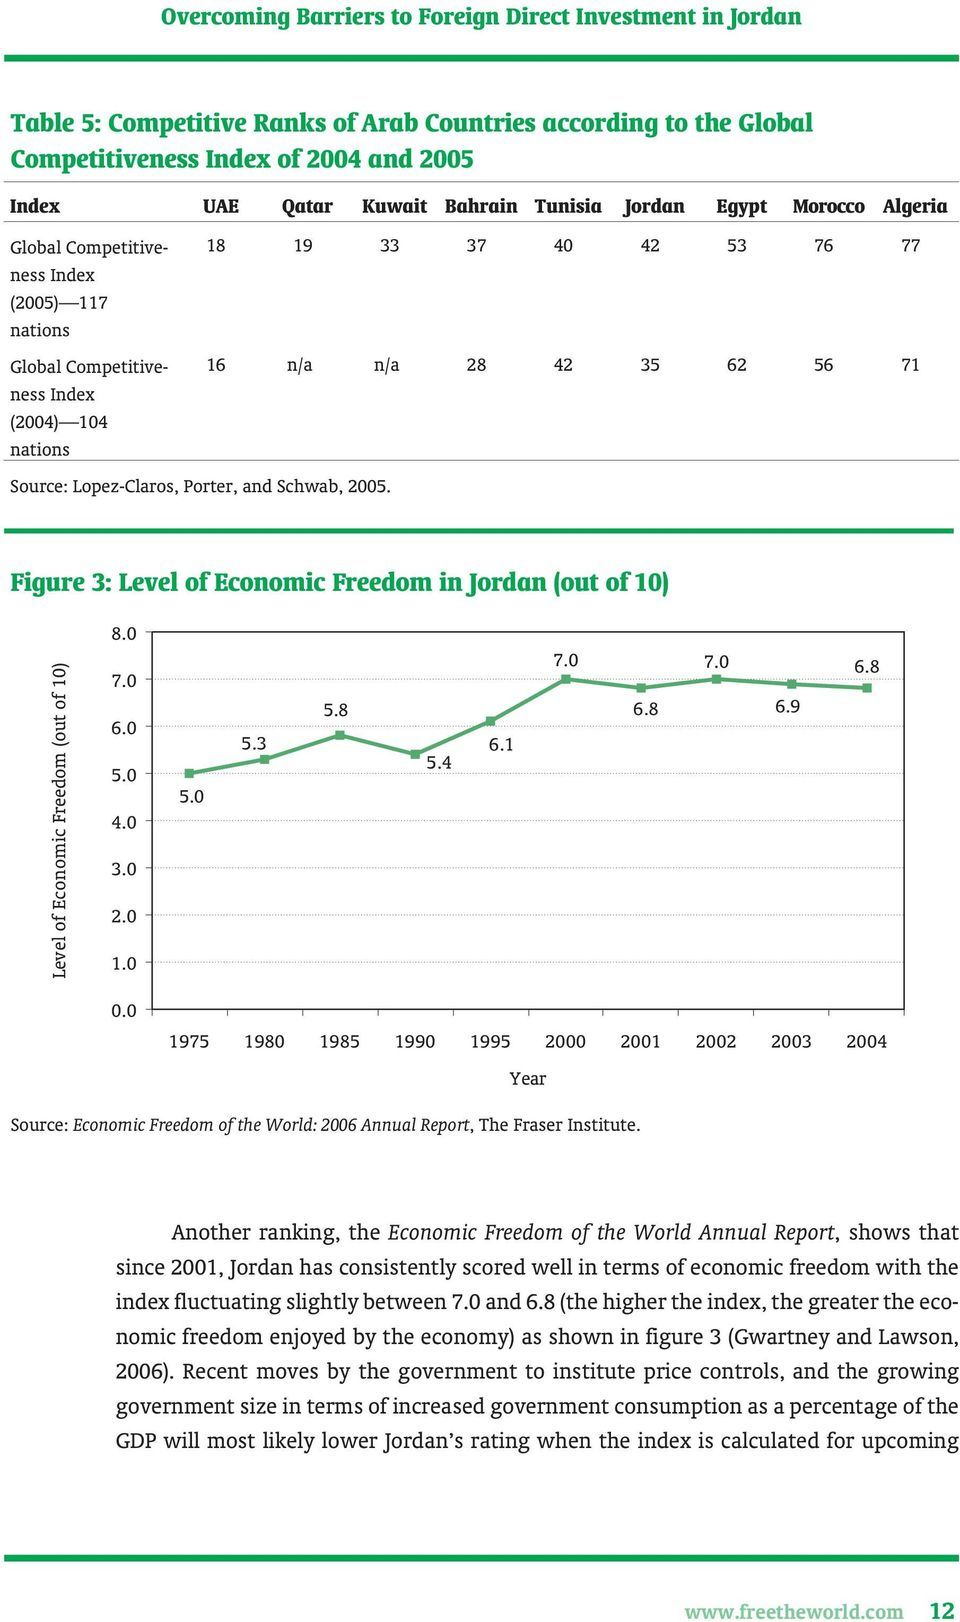 18 19 33 37 40 42 53 76 77 16 n/a n/a 28 42 35 62 56 71 Figure 3: Level of Economic Freedom in Jordan (out of 10) Level of Economic Freedom (out of 10) 8.0 7.0 6.0 5.0 4.0 3.0 2.0 1.0 5.0 5.3 5.8 5.